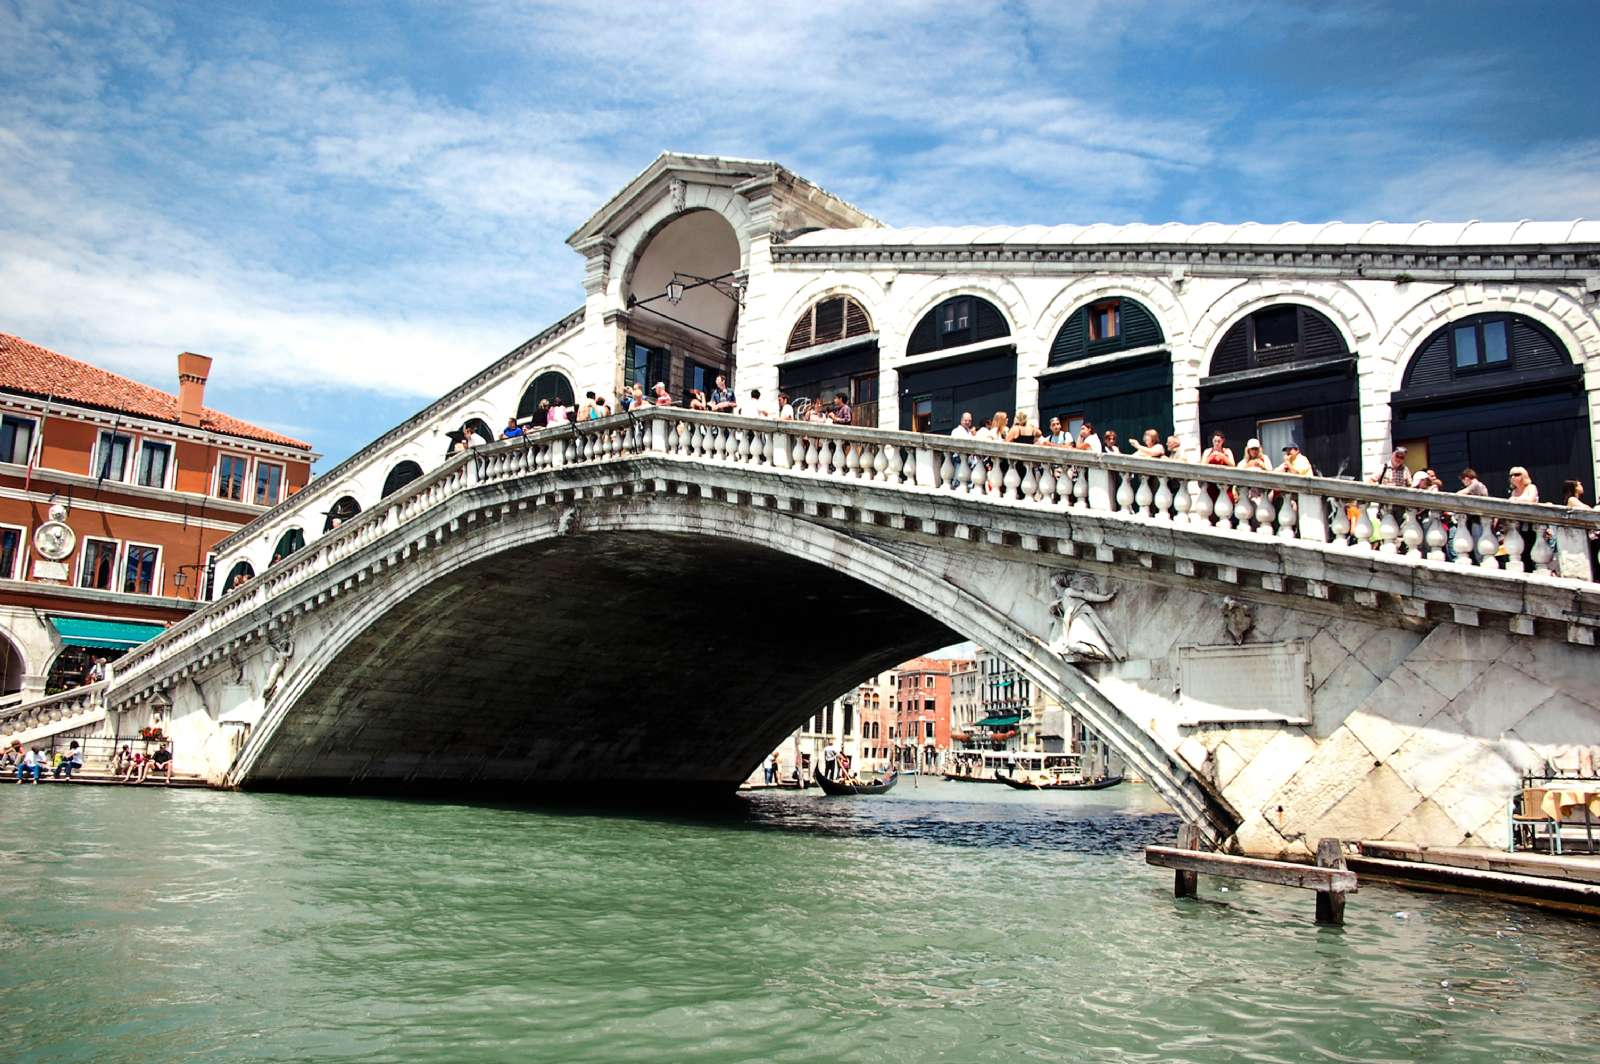 Rialto Bridge over the Grand Canal